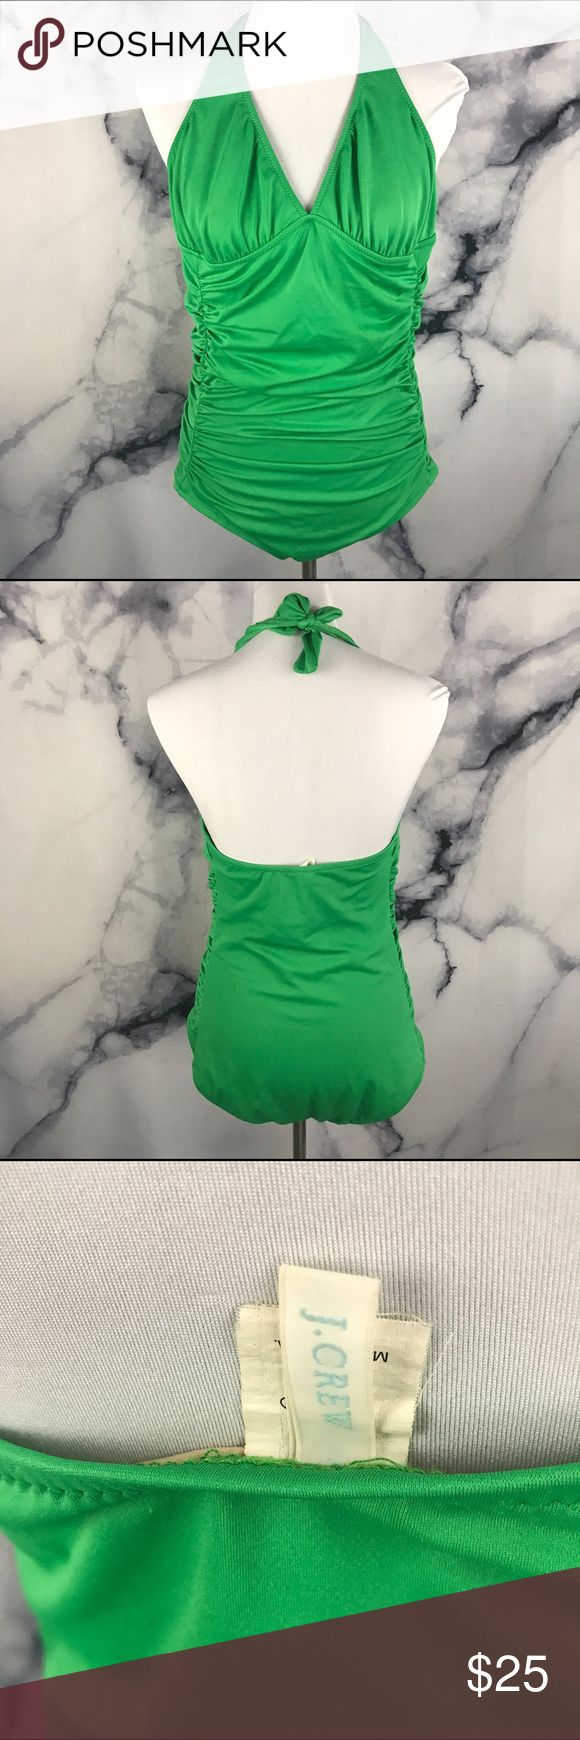 J crew emerald Green Ruched Modest Swimsuit 14 Excellent used condition. True to size! 🖤THANK YOU for supporting the dream of business ownership of 2 BFFs! 🖤DON'T PASS THIS UP! Make us an offer! 🖤We ship daily M-Sat, so youll get it on time! 🖤no price discussion in comments please🖤 use offer button 🖤reasonable offers accepted 🖤low offers countered🖤offers below 50% of asking price are auto declined🖤 J. Crew Swim One Pieces